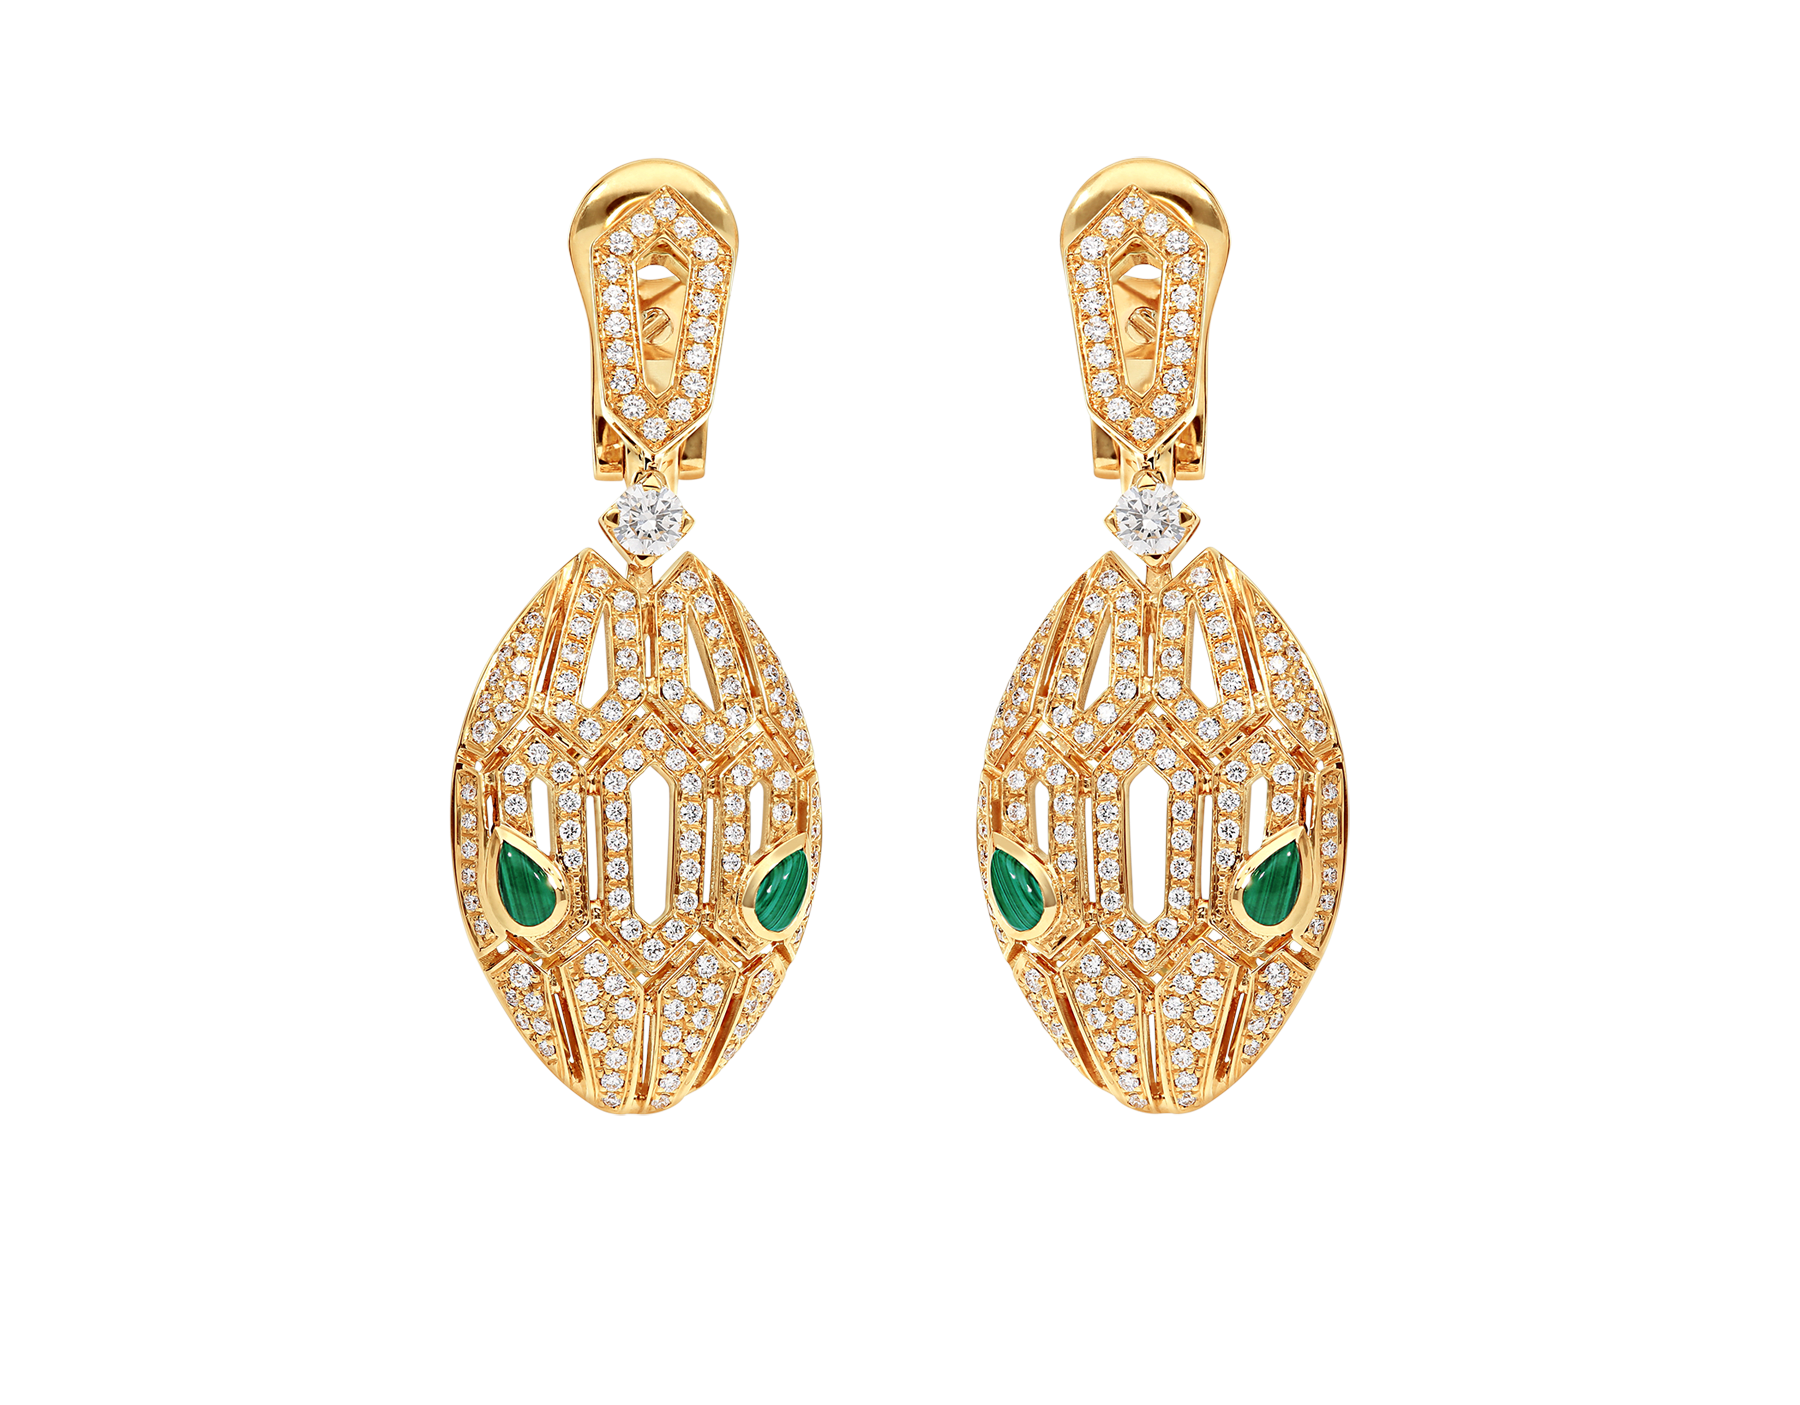 Serpenti 18 kt yellow gold earrings set with pavé diamonds and malachite eyes 354576 image 1